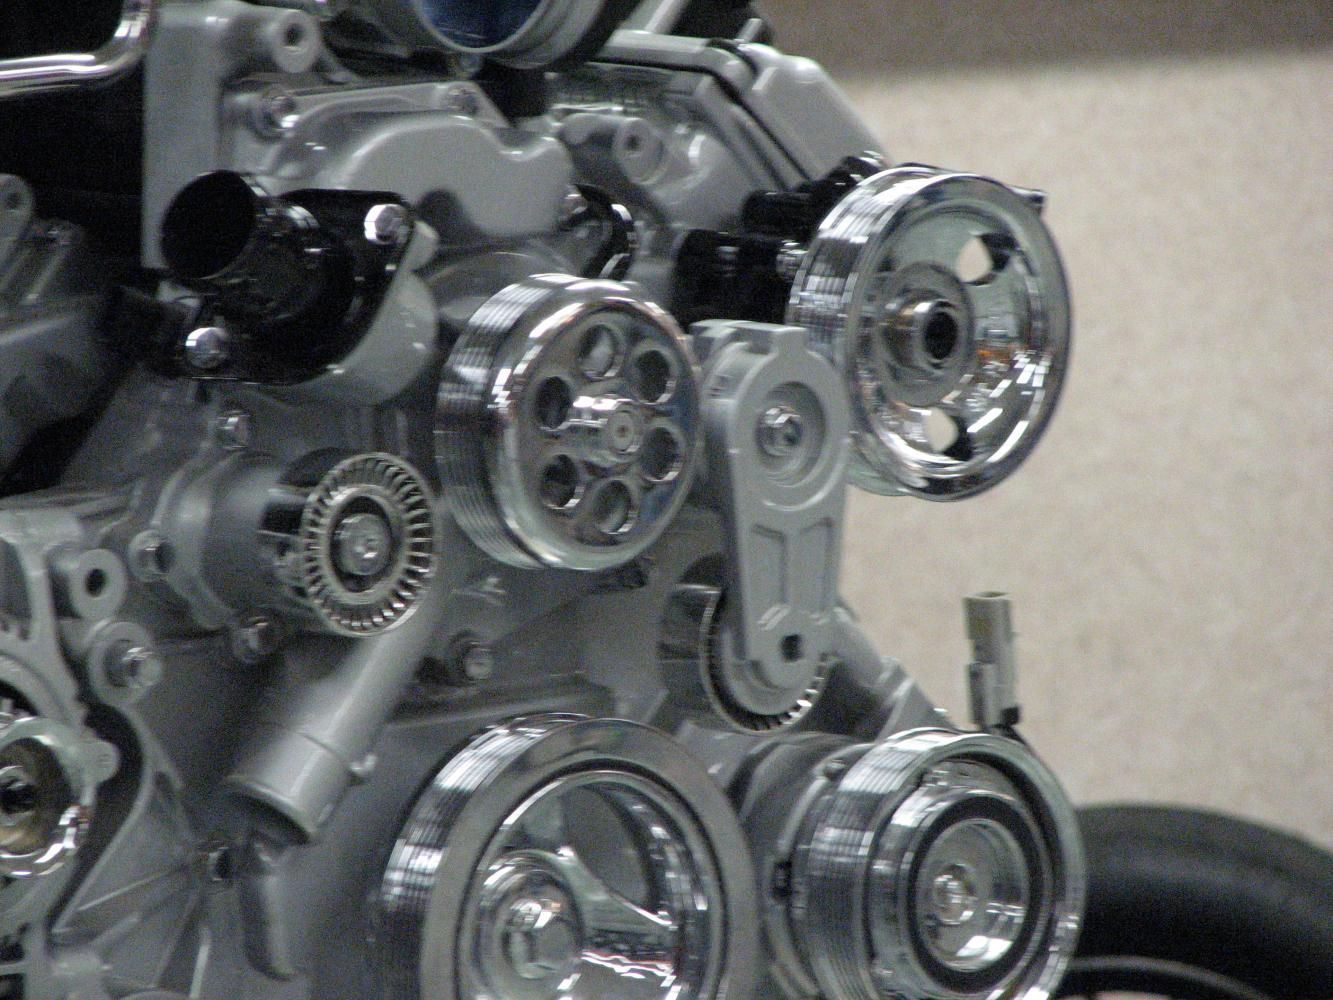 HD Engine Wallpapers Engine Backgrounds Engine Images For